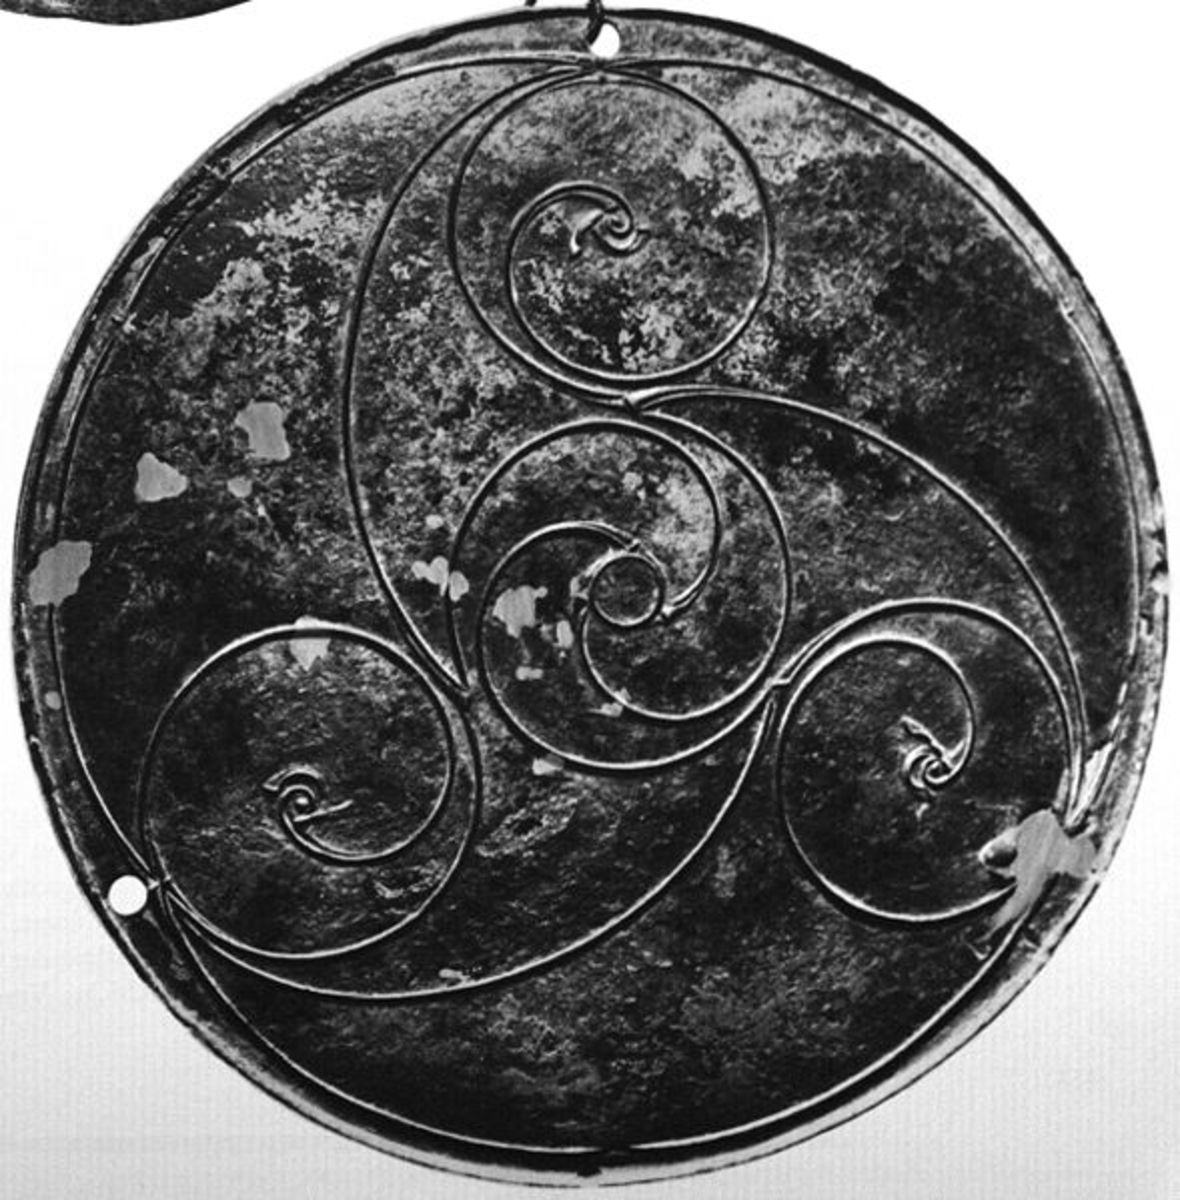 Celtic whorl in a triskele arrangement, pre-Christian. Source: GubPowderMa - wikicommons.